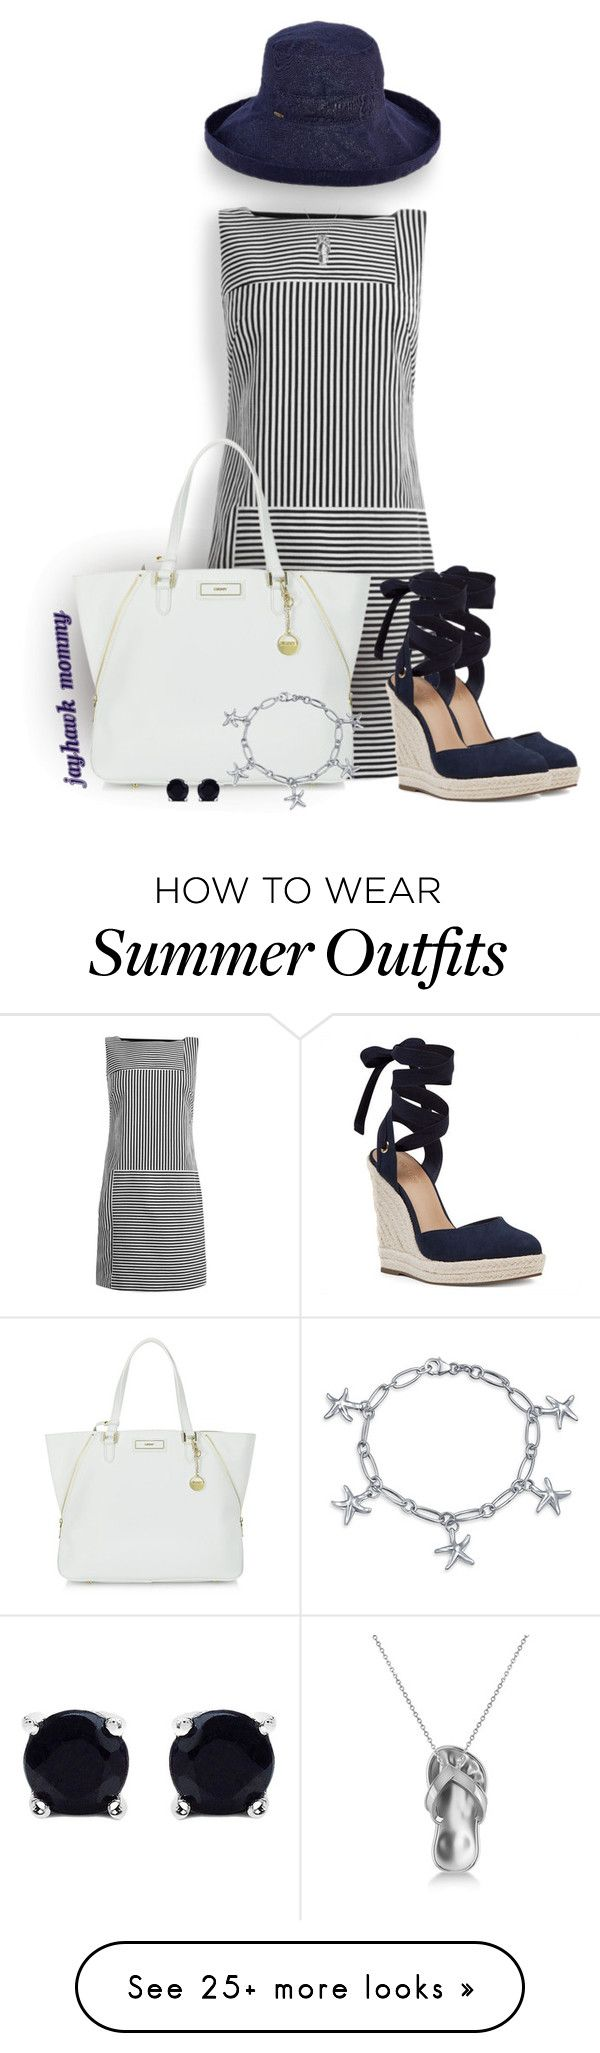 """Cape Cod Summer"" by jayhawkmommy on Polyvore featuring Maryling, Nine West, DKNY, Scala, Allurez, Bling Jewelry and Malaika"